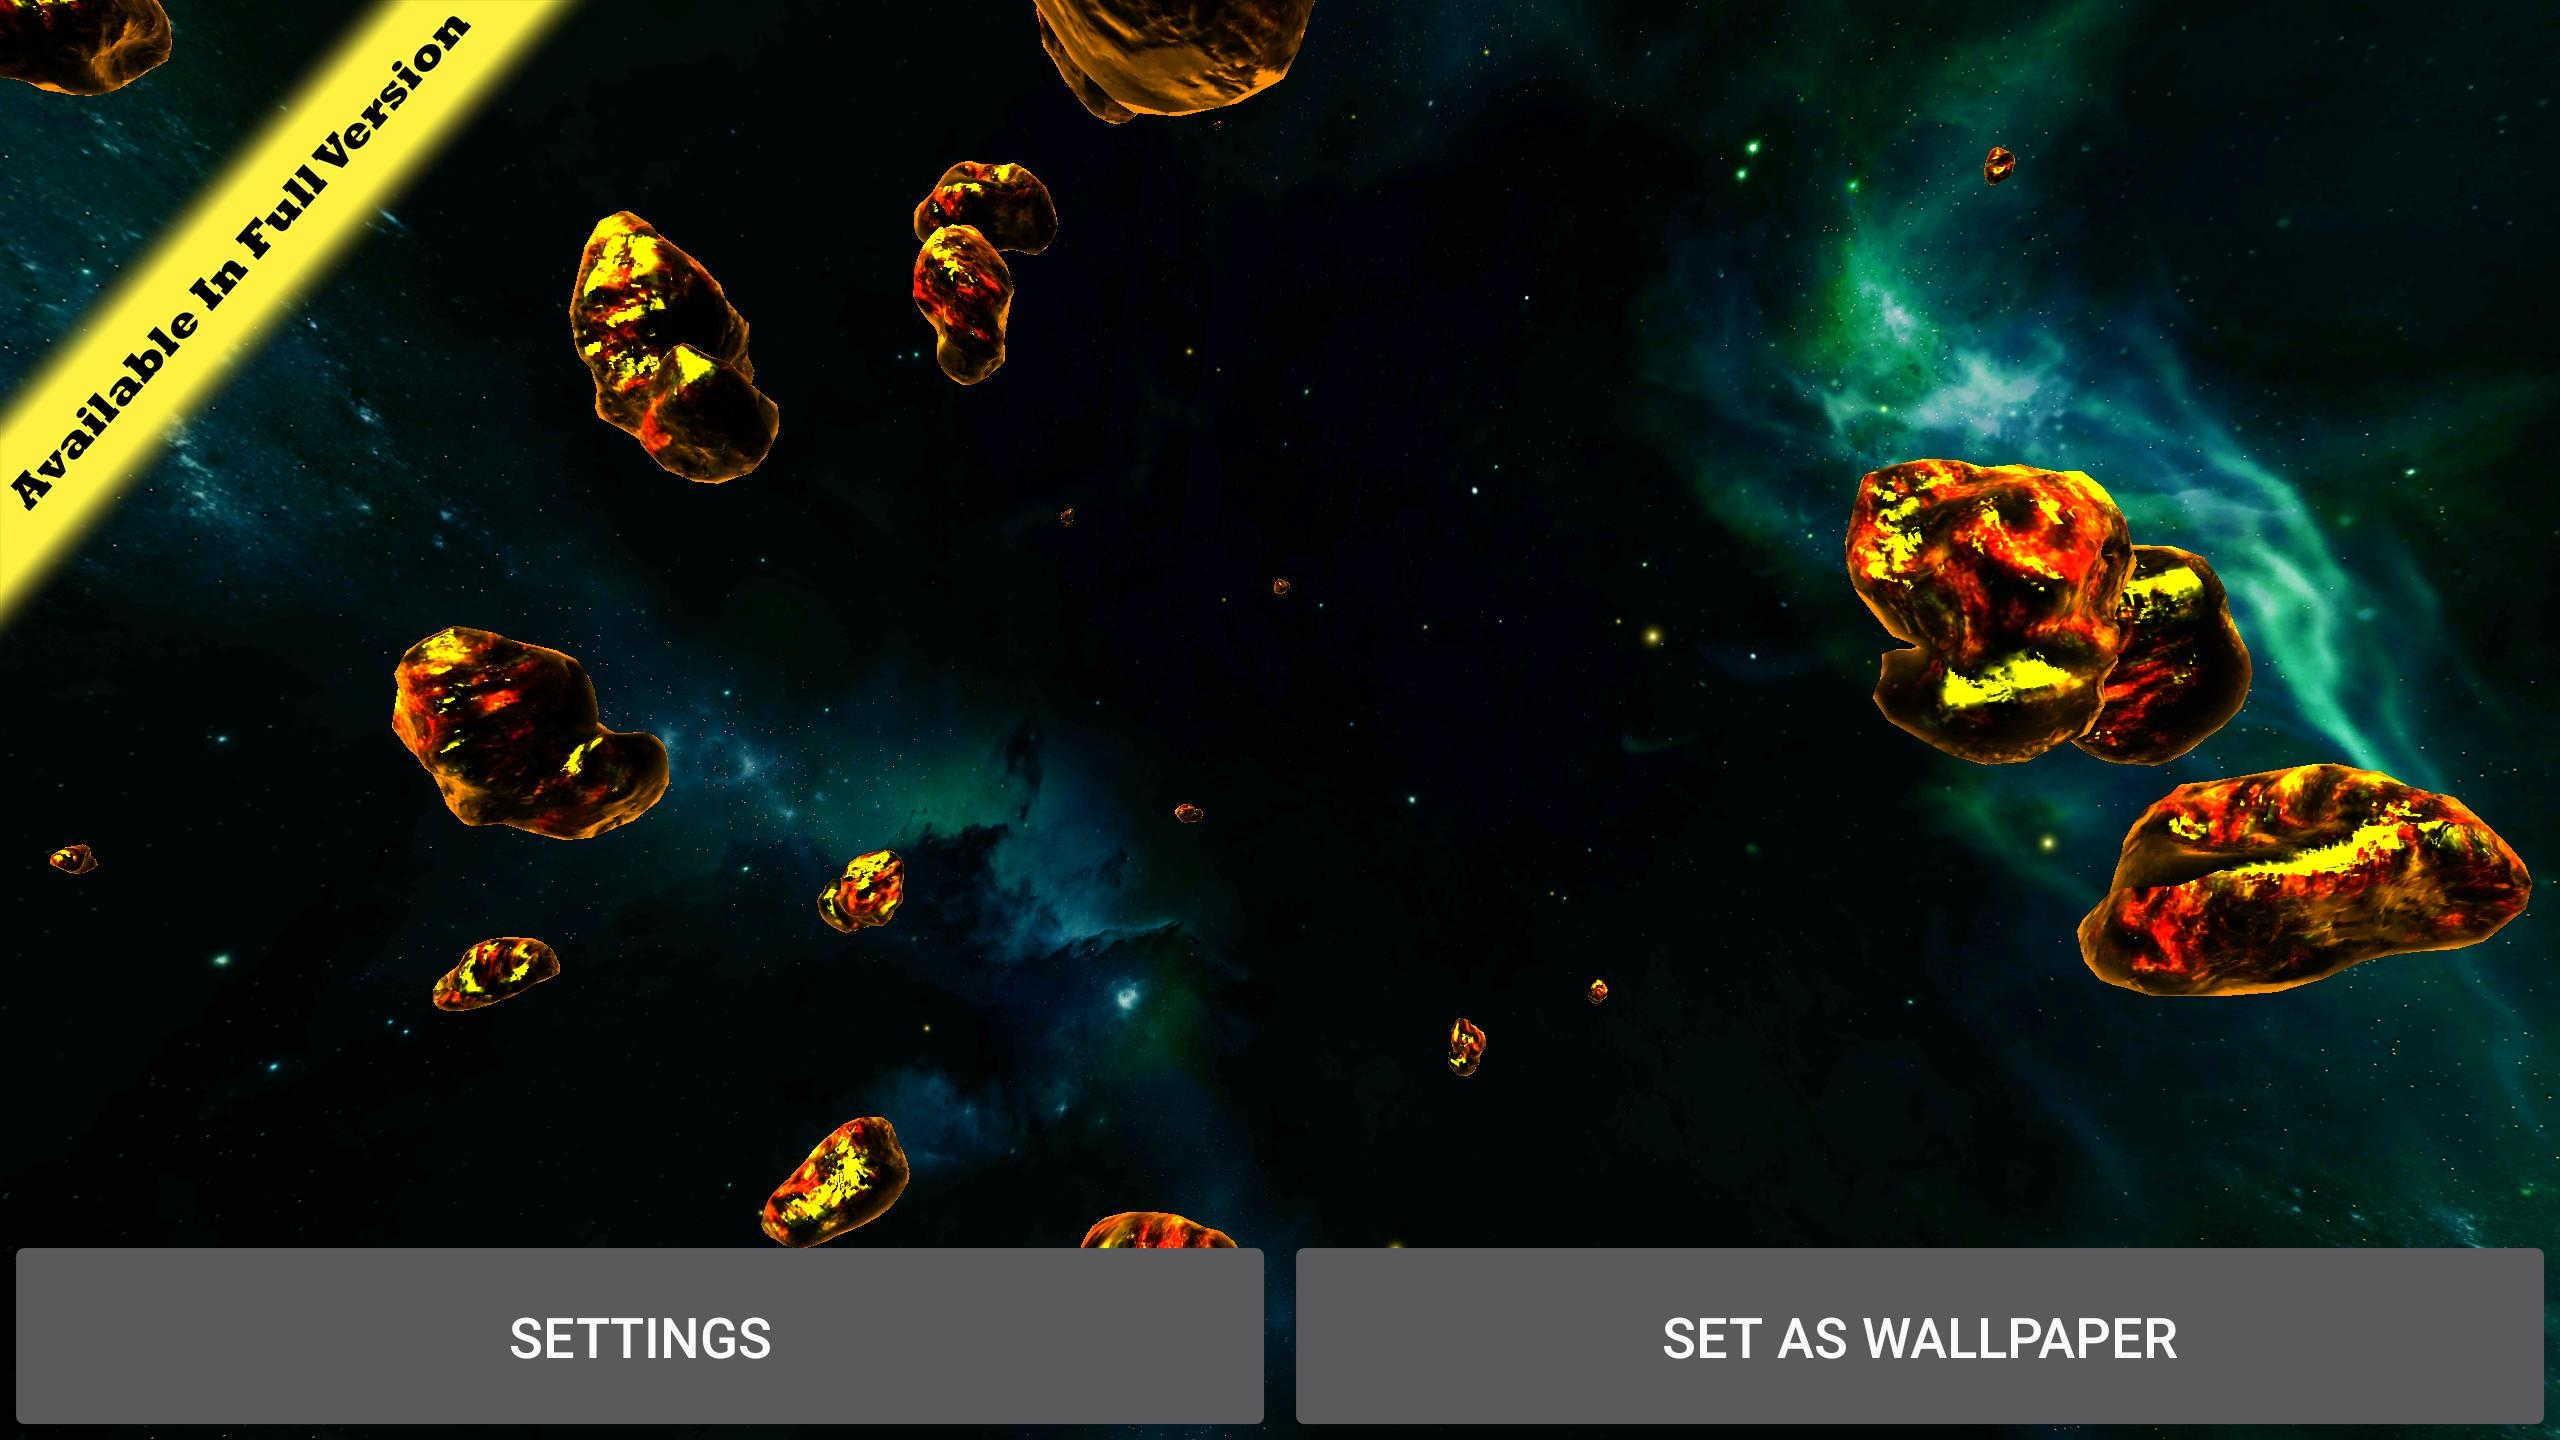 Gyro Space Asteroids 3d Live Wallpaper For Android Apk